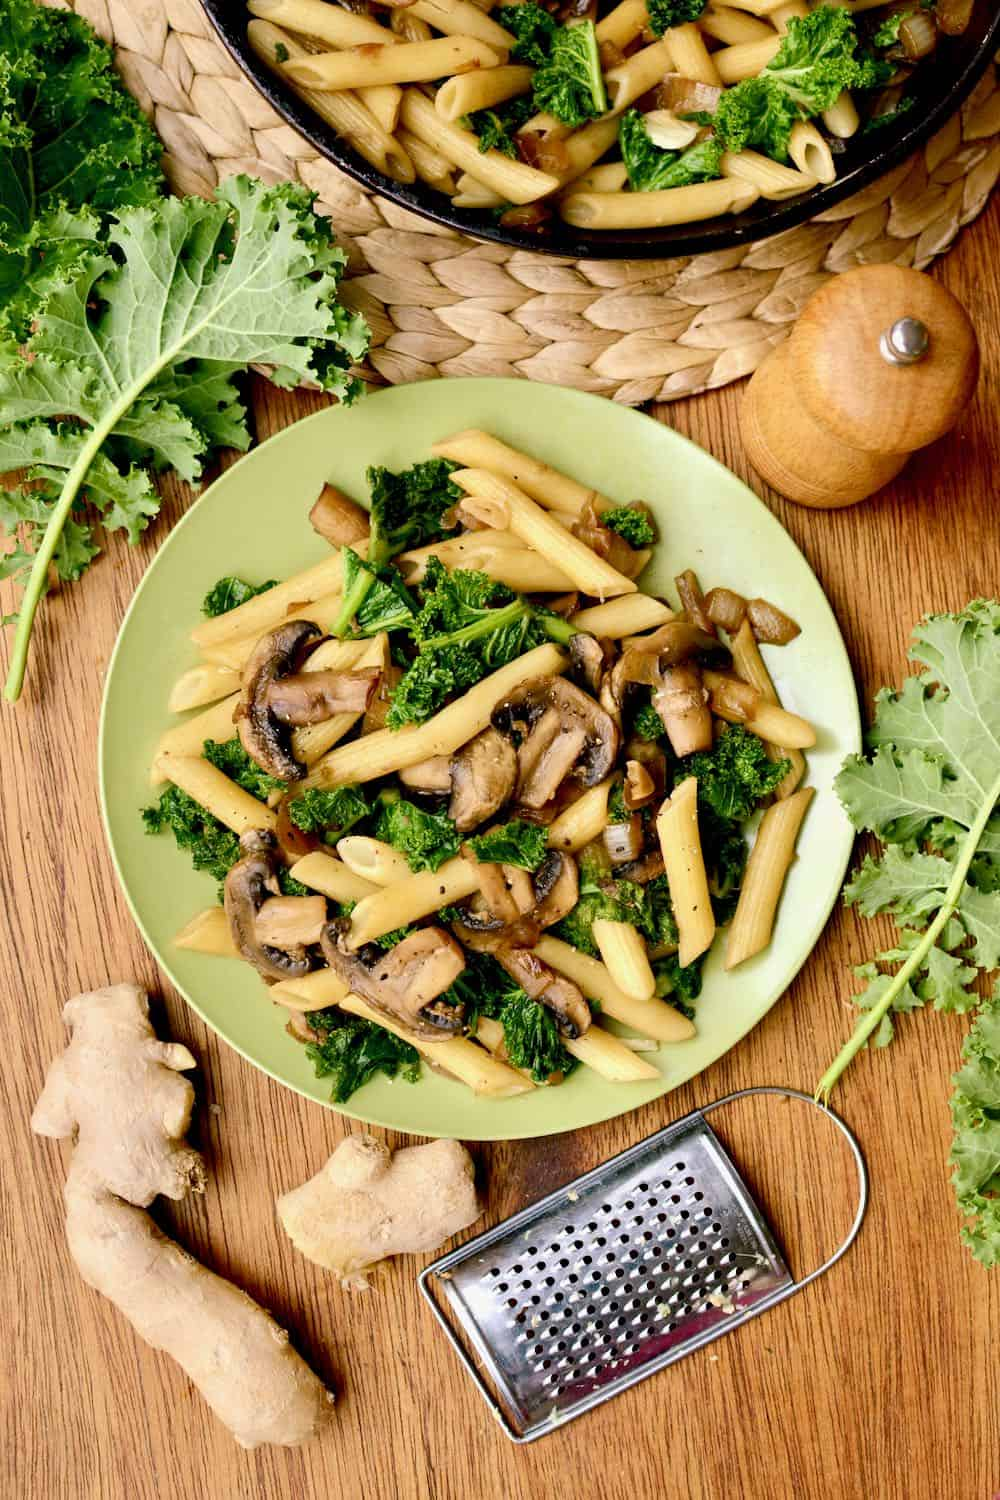 A plate of pasta, with a fresh ginger and kale around it.